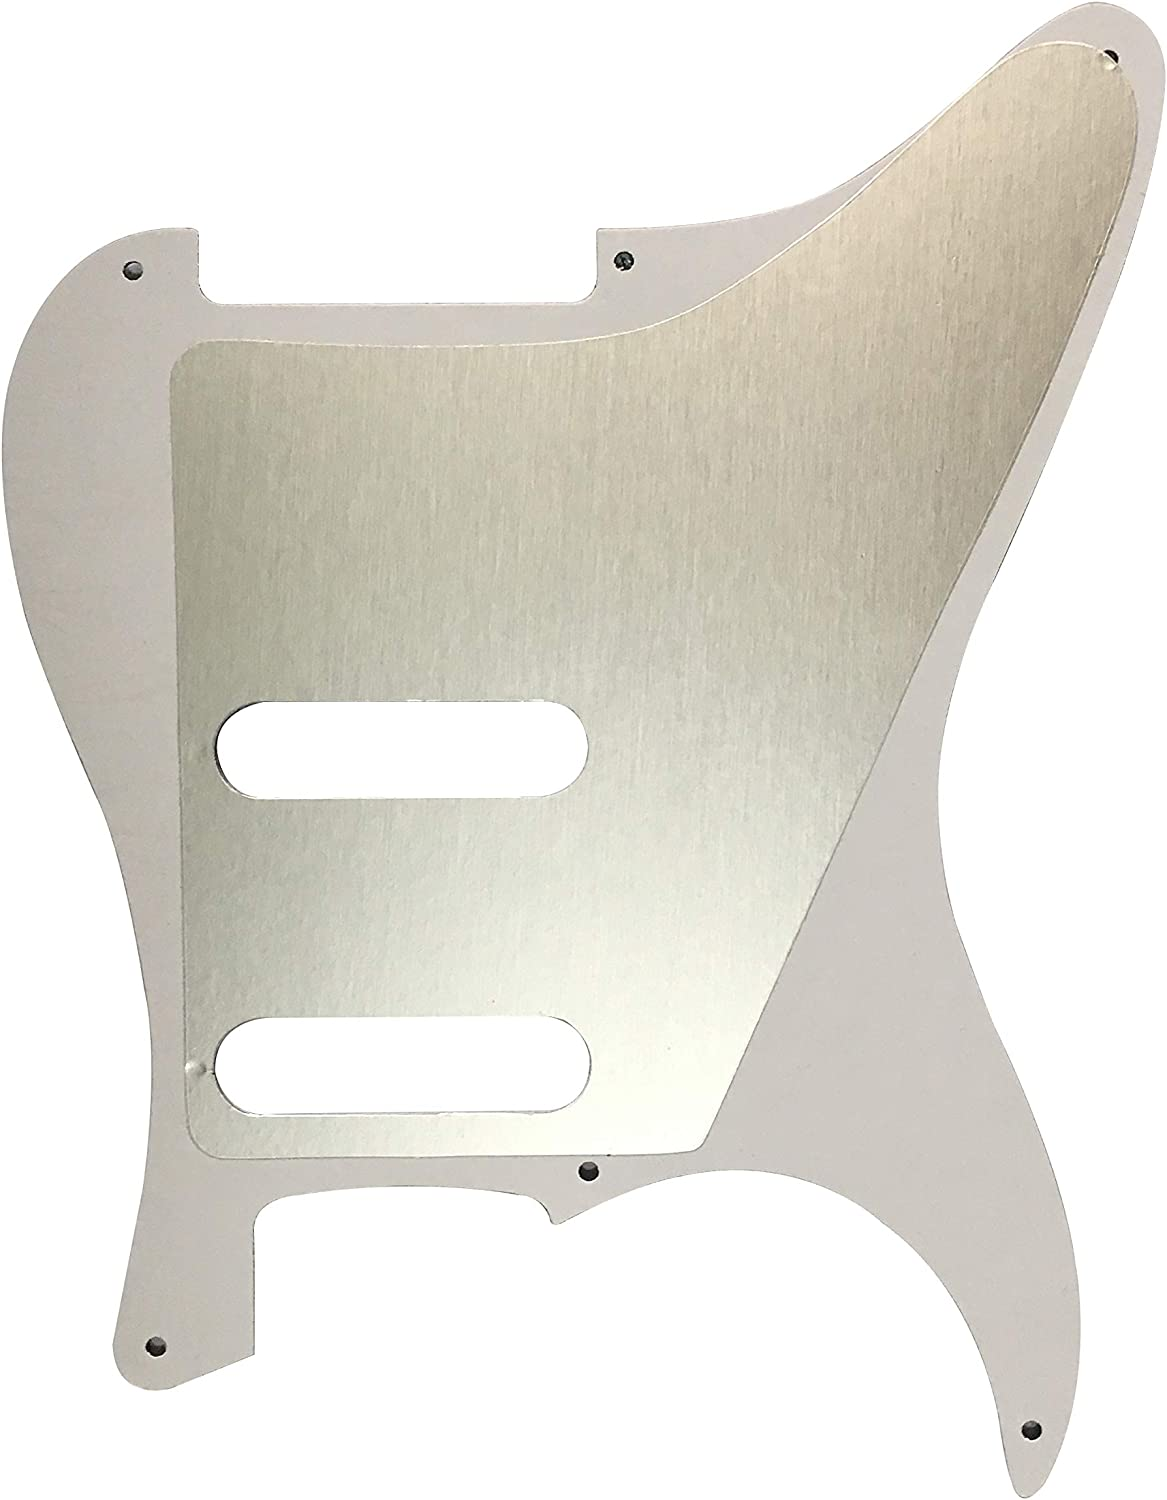 For Strat No Pots With 6 Screw Holes Guitar Pickguard Scratch Plate 3 Ply Black